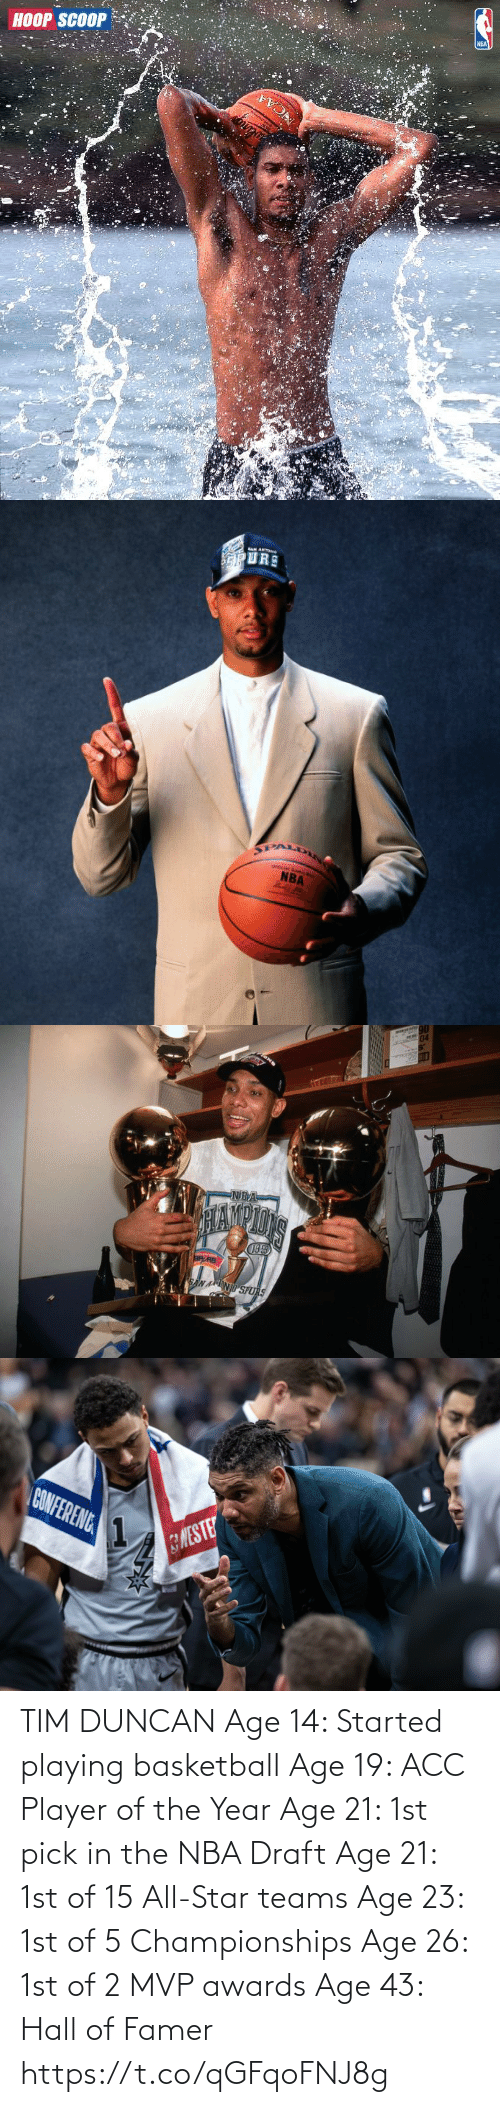 Basketball: TIM DUNCAN  Age 14: Started playing basketball Age 19: ACC Player of the Year Age 21: 1st pick in the NBA Draft Age 21: 1st of 15 All-Star teams Age 23: 1st of 5 Championships Age 26: 1st of 2 MVP awards Age 43: Hall of Famer https://t.co/qGFqoFNJ8g